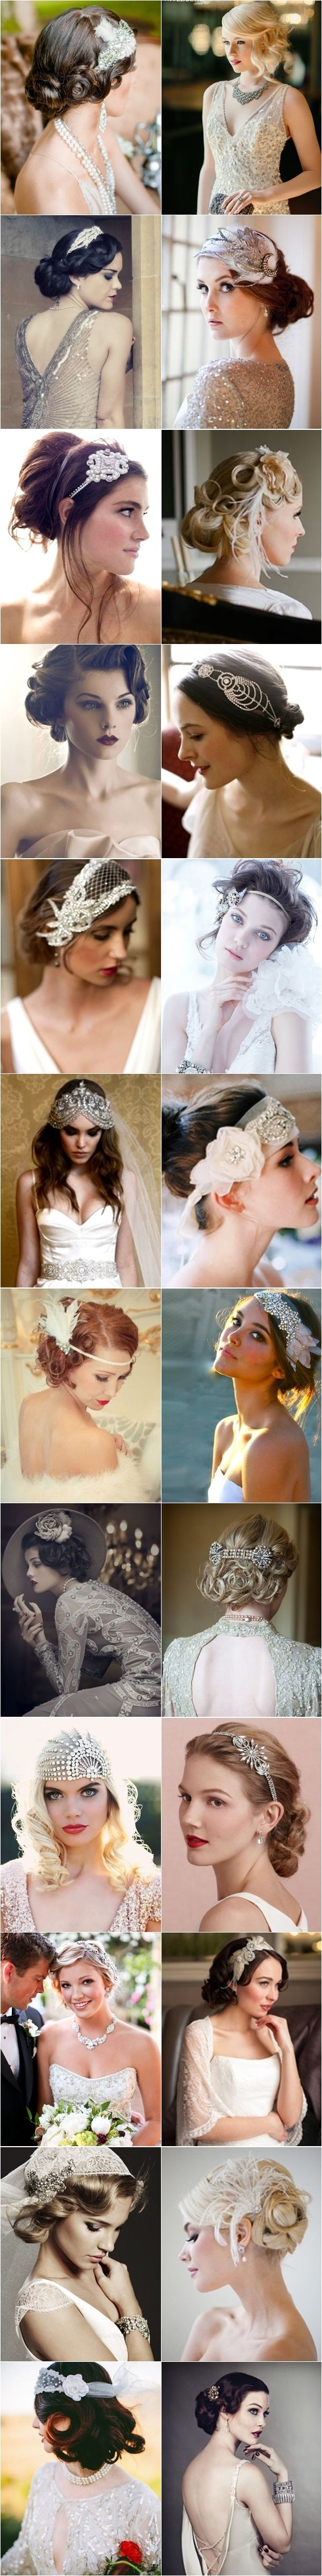 Wedding Philippines - 1920s Gatsby Glam Inspired Hairstyles Tons of ideas for our hair for your future Gatsby-themed wedding! Lol Kayla McCallister